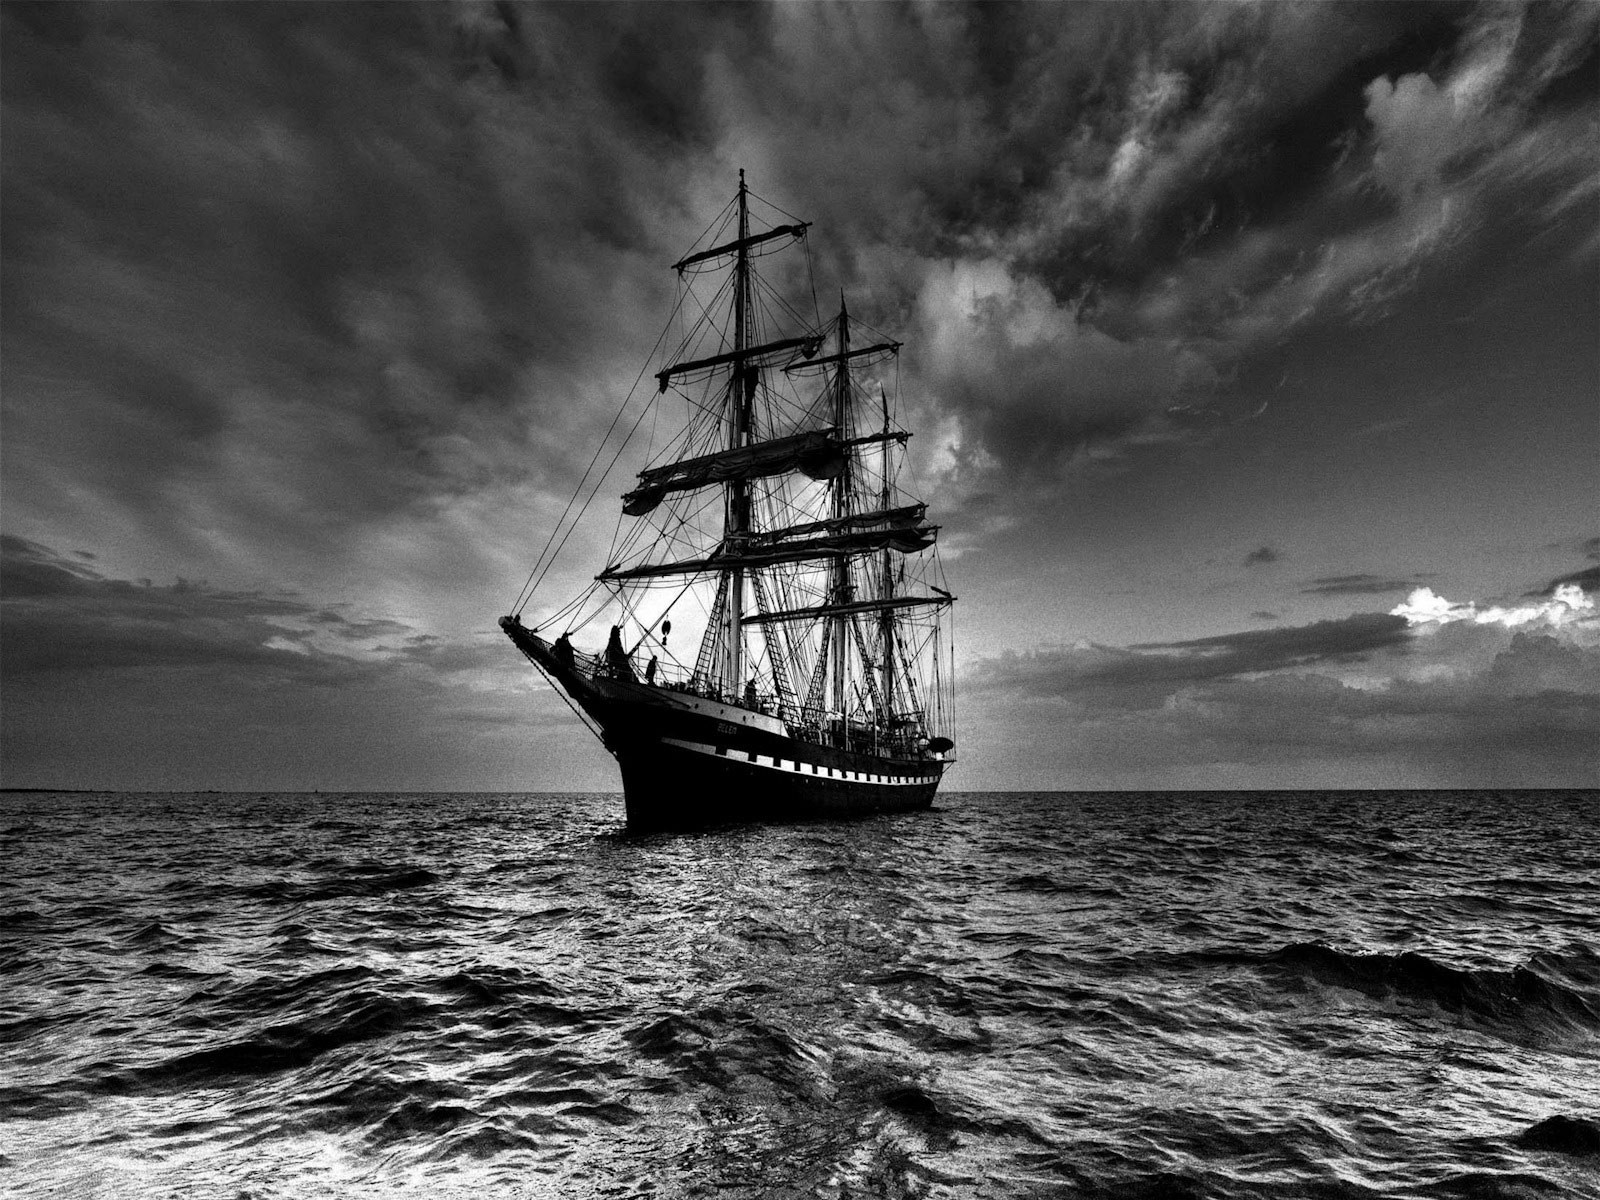 Abandoned ships - The Mary Celeste